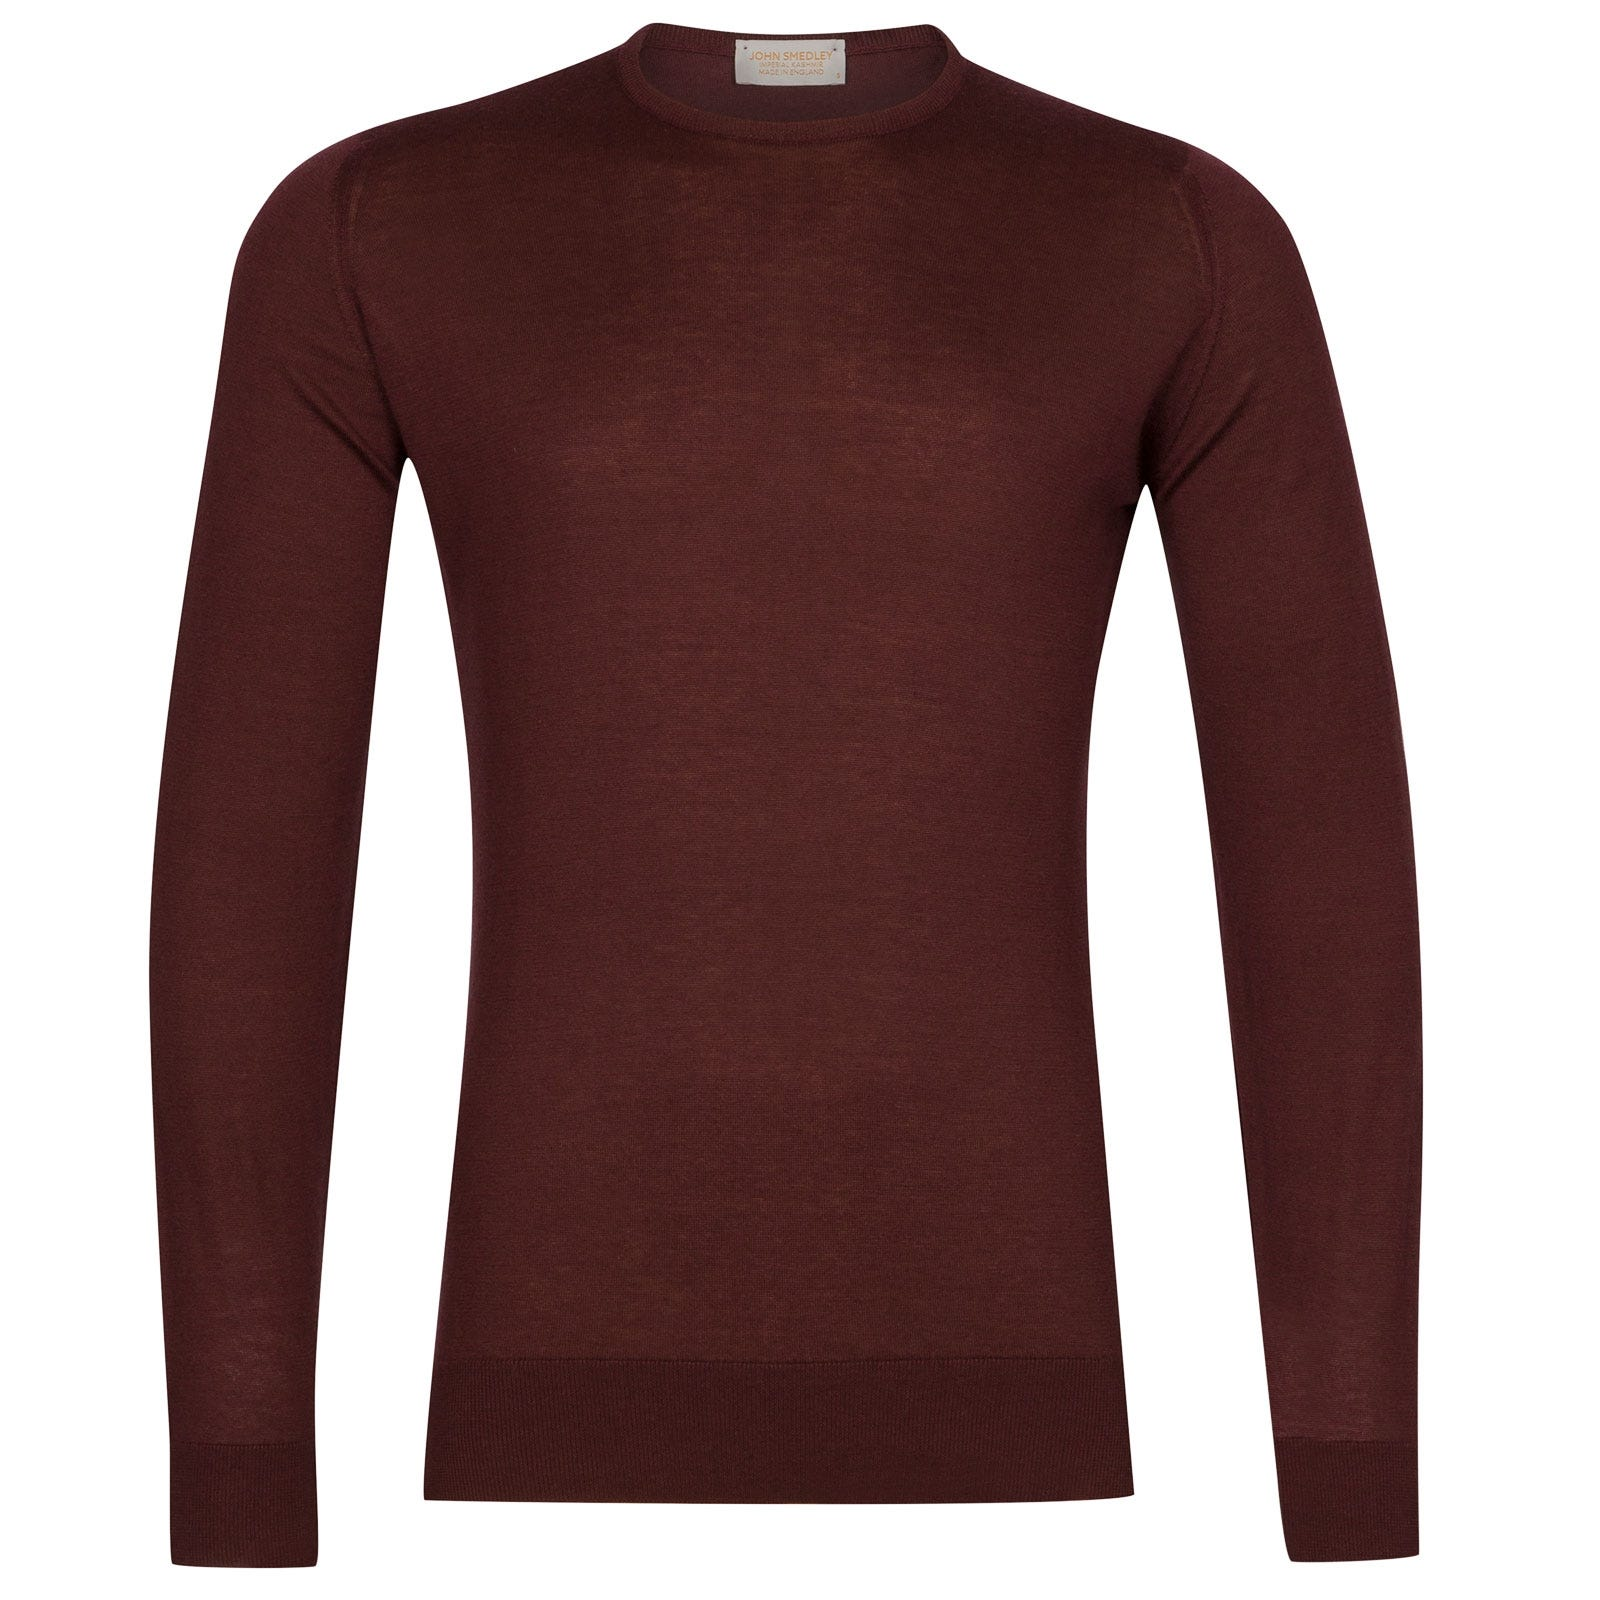 John Smedley theon Sea Island Cotton and Cashmere Pullover in Burgundy